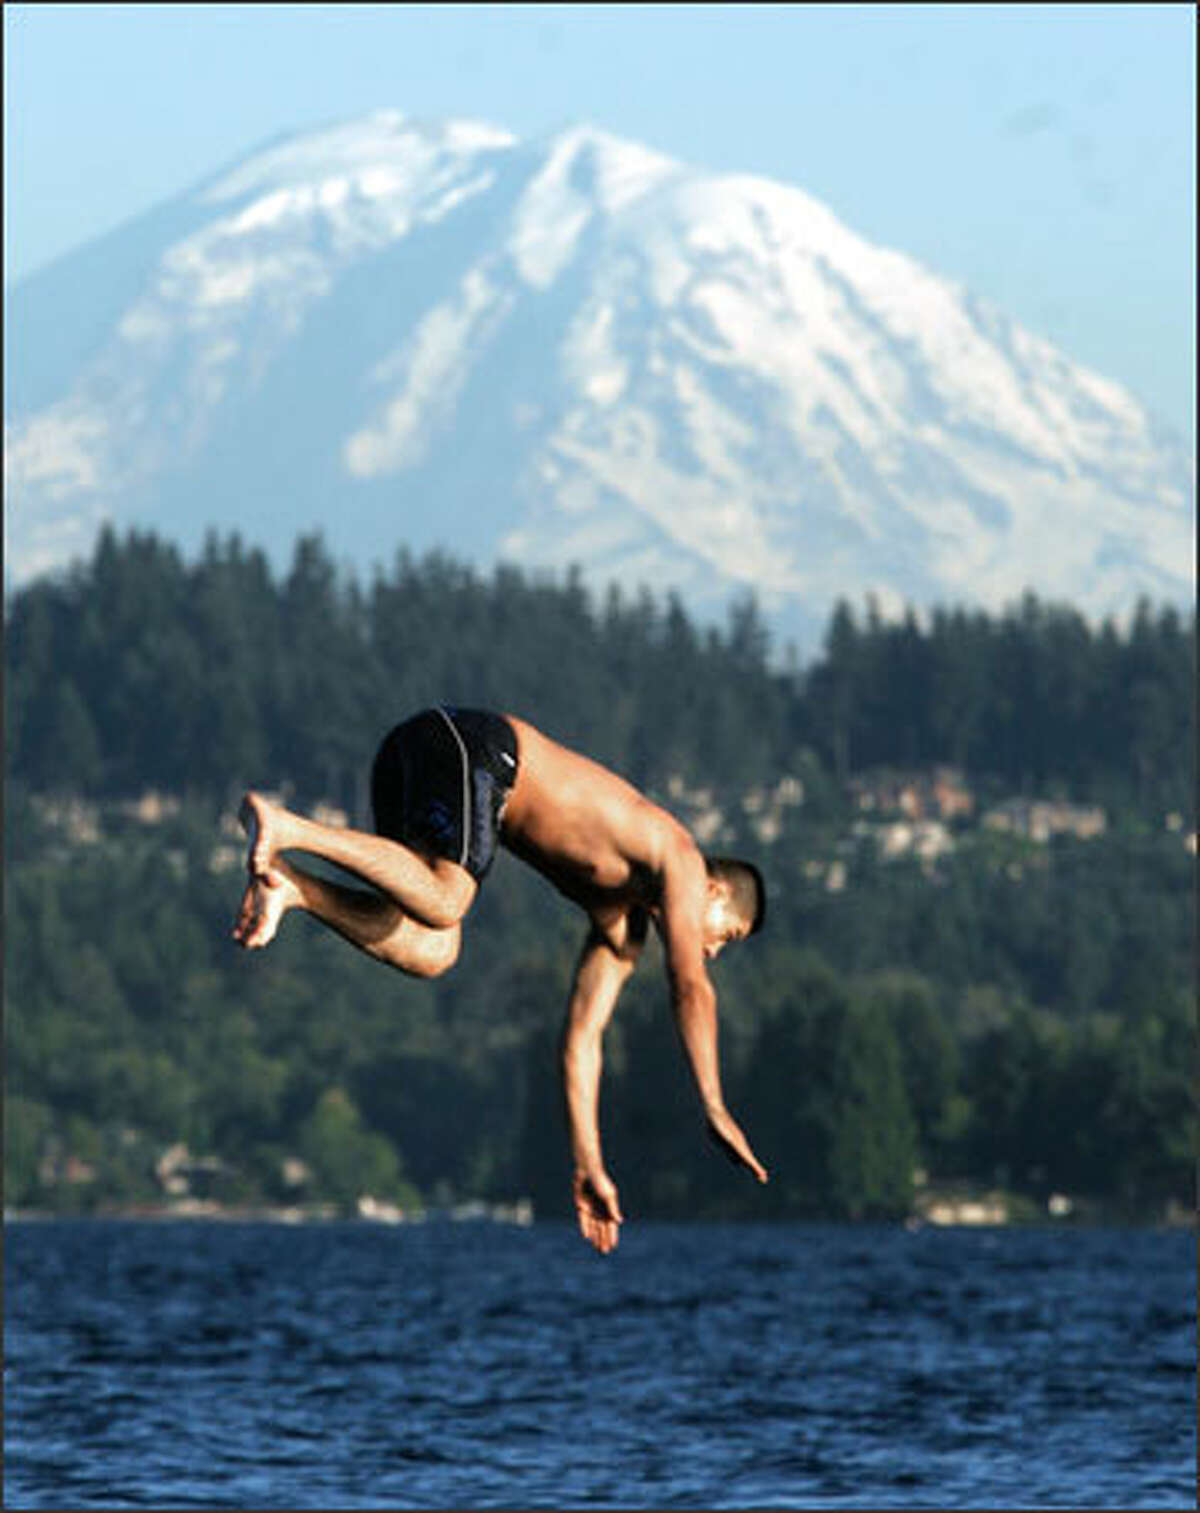 Moises Delgadillo dives off the swimming dock at Warren G. Magnuson Park in Seattle at dusk. Local temperatures hit the 80s this past week.